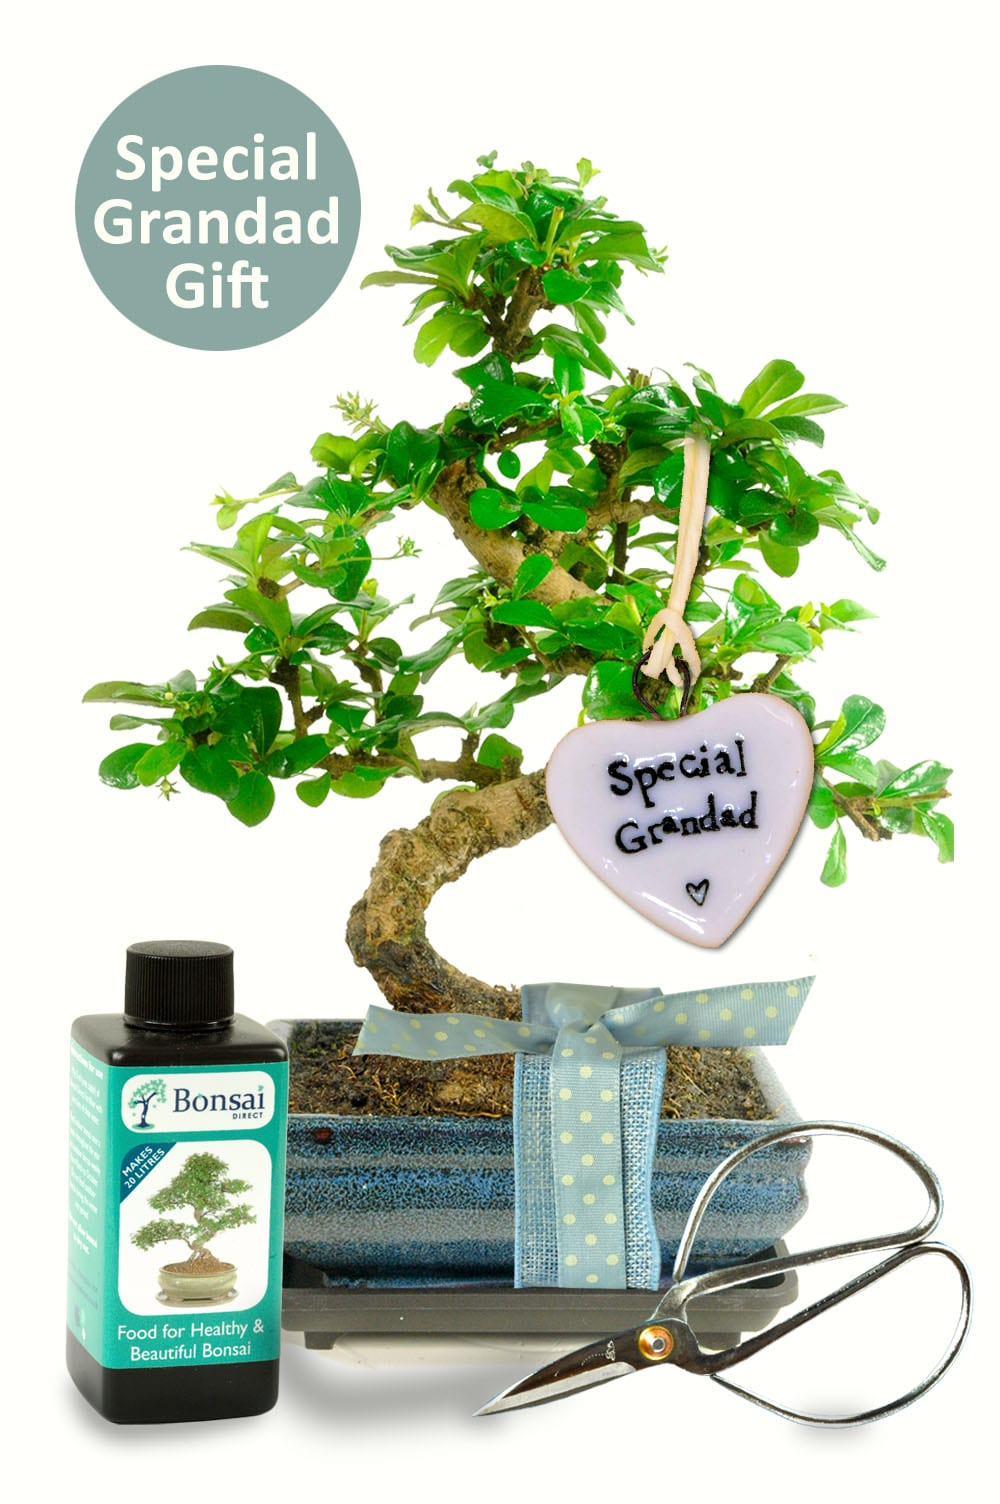 Special Grandad Bonsai birthday gift